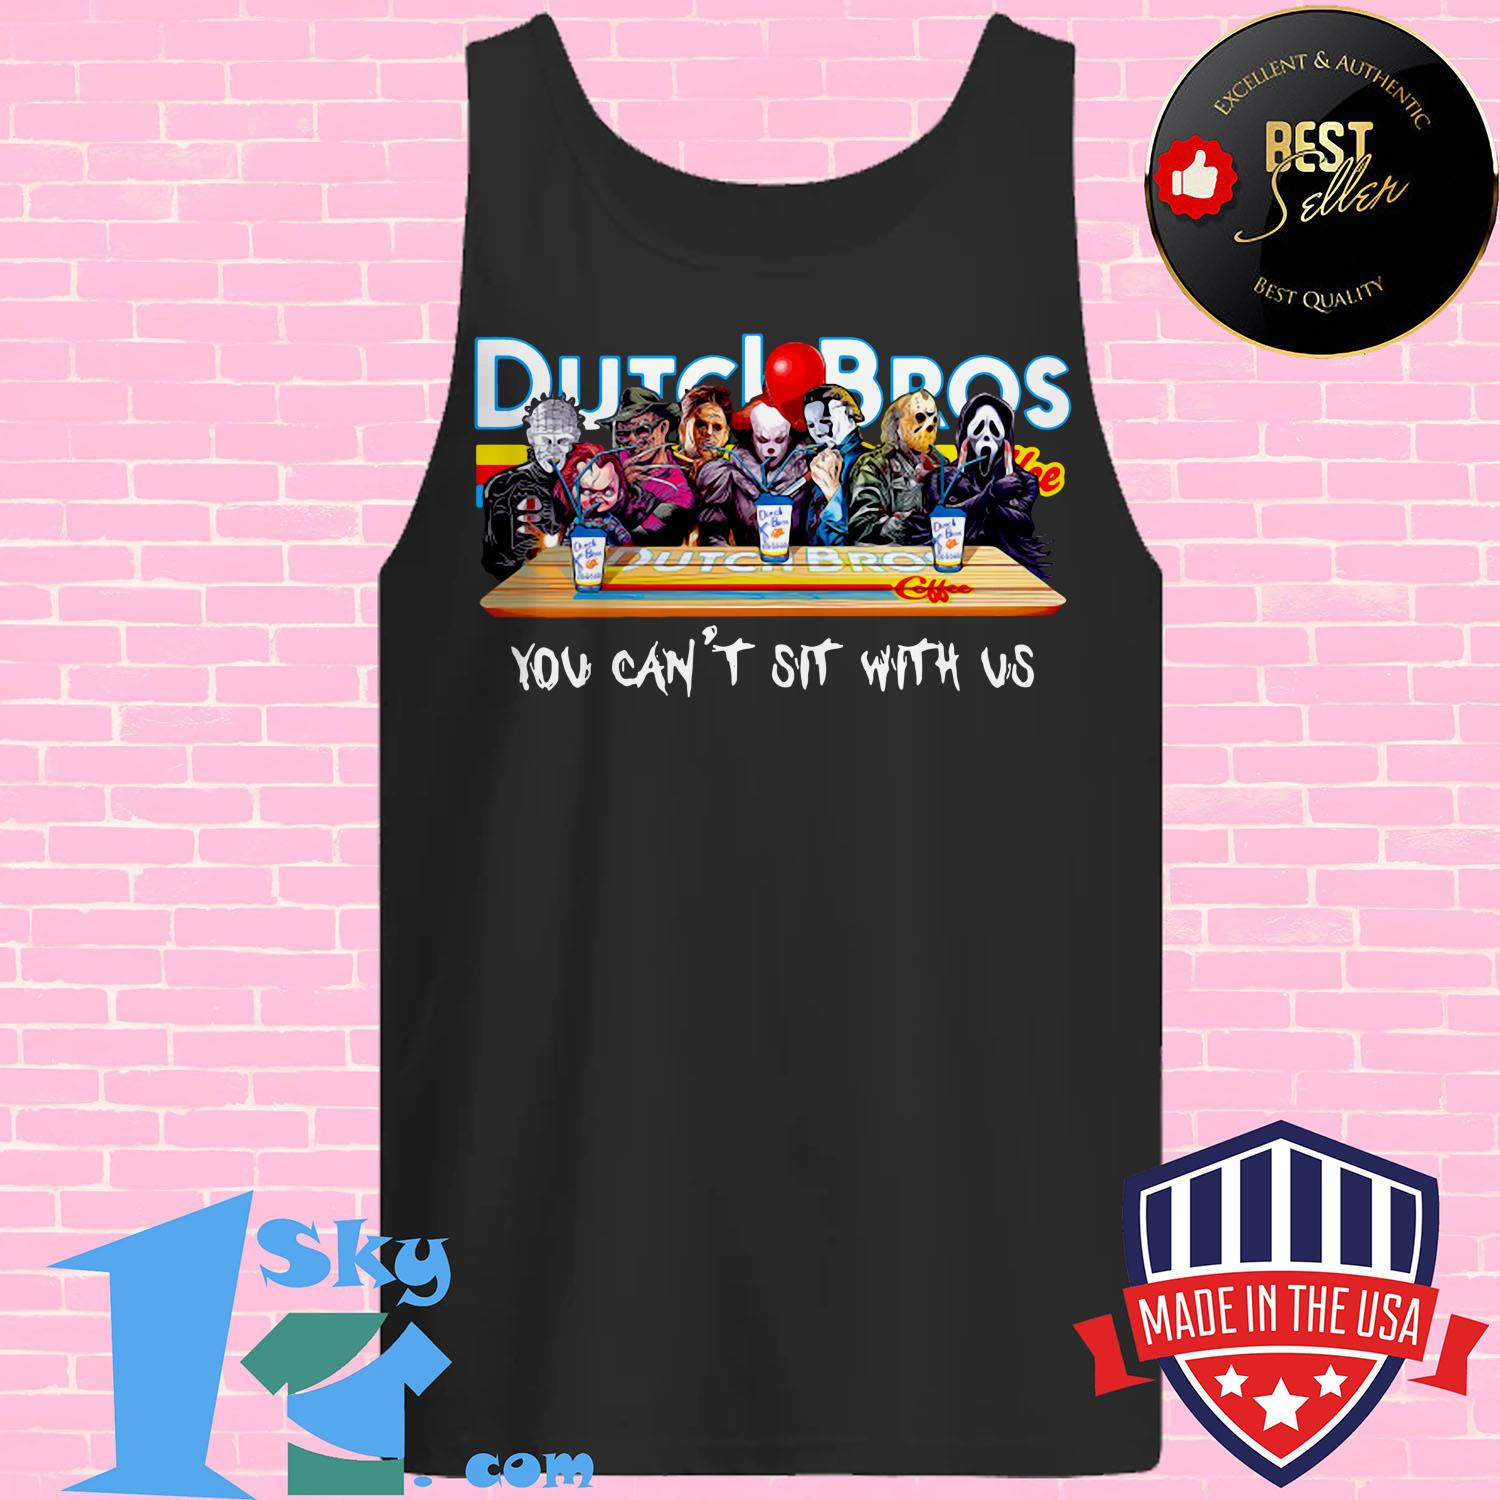 dutch bros coffee horror character movie you cant sit with us tank top - Dutch Bros Coffee Horror Character movie You Can't Sit with Us shirt